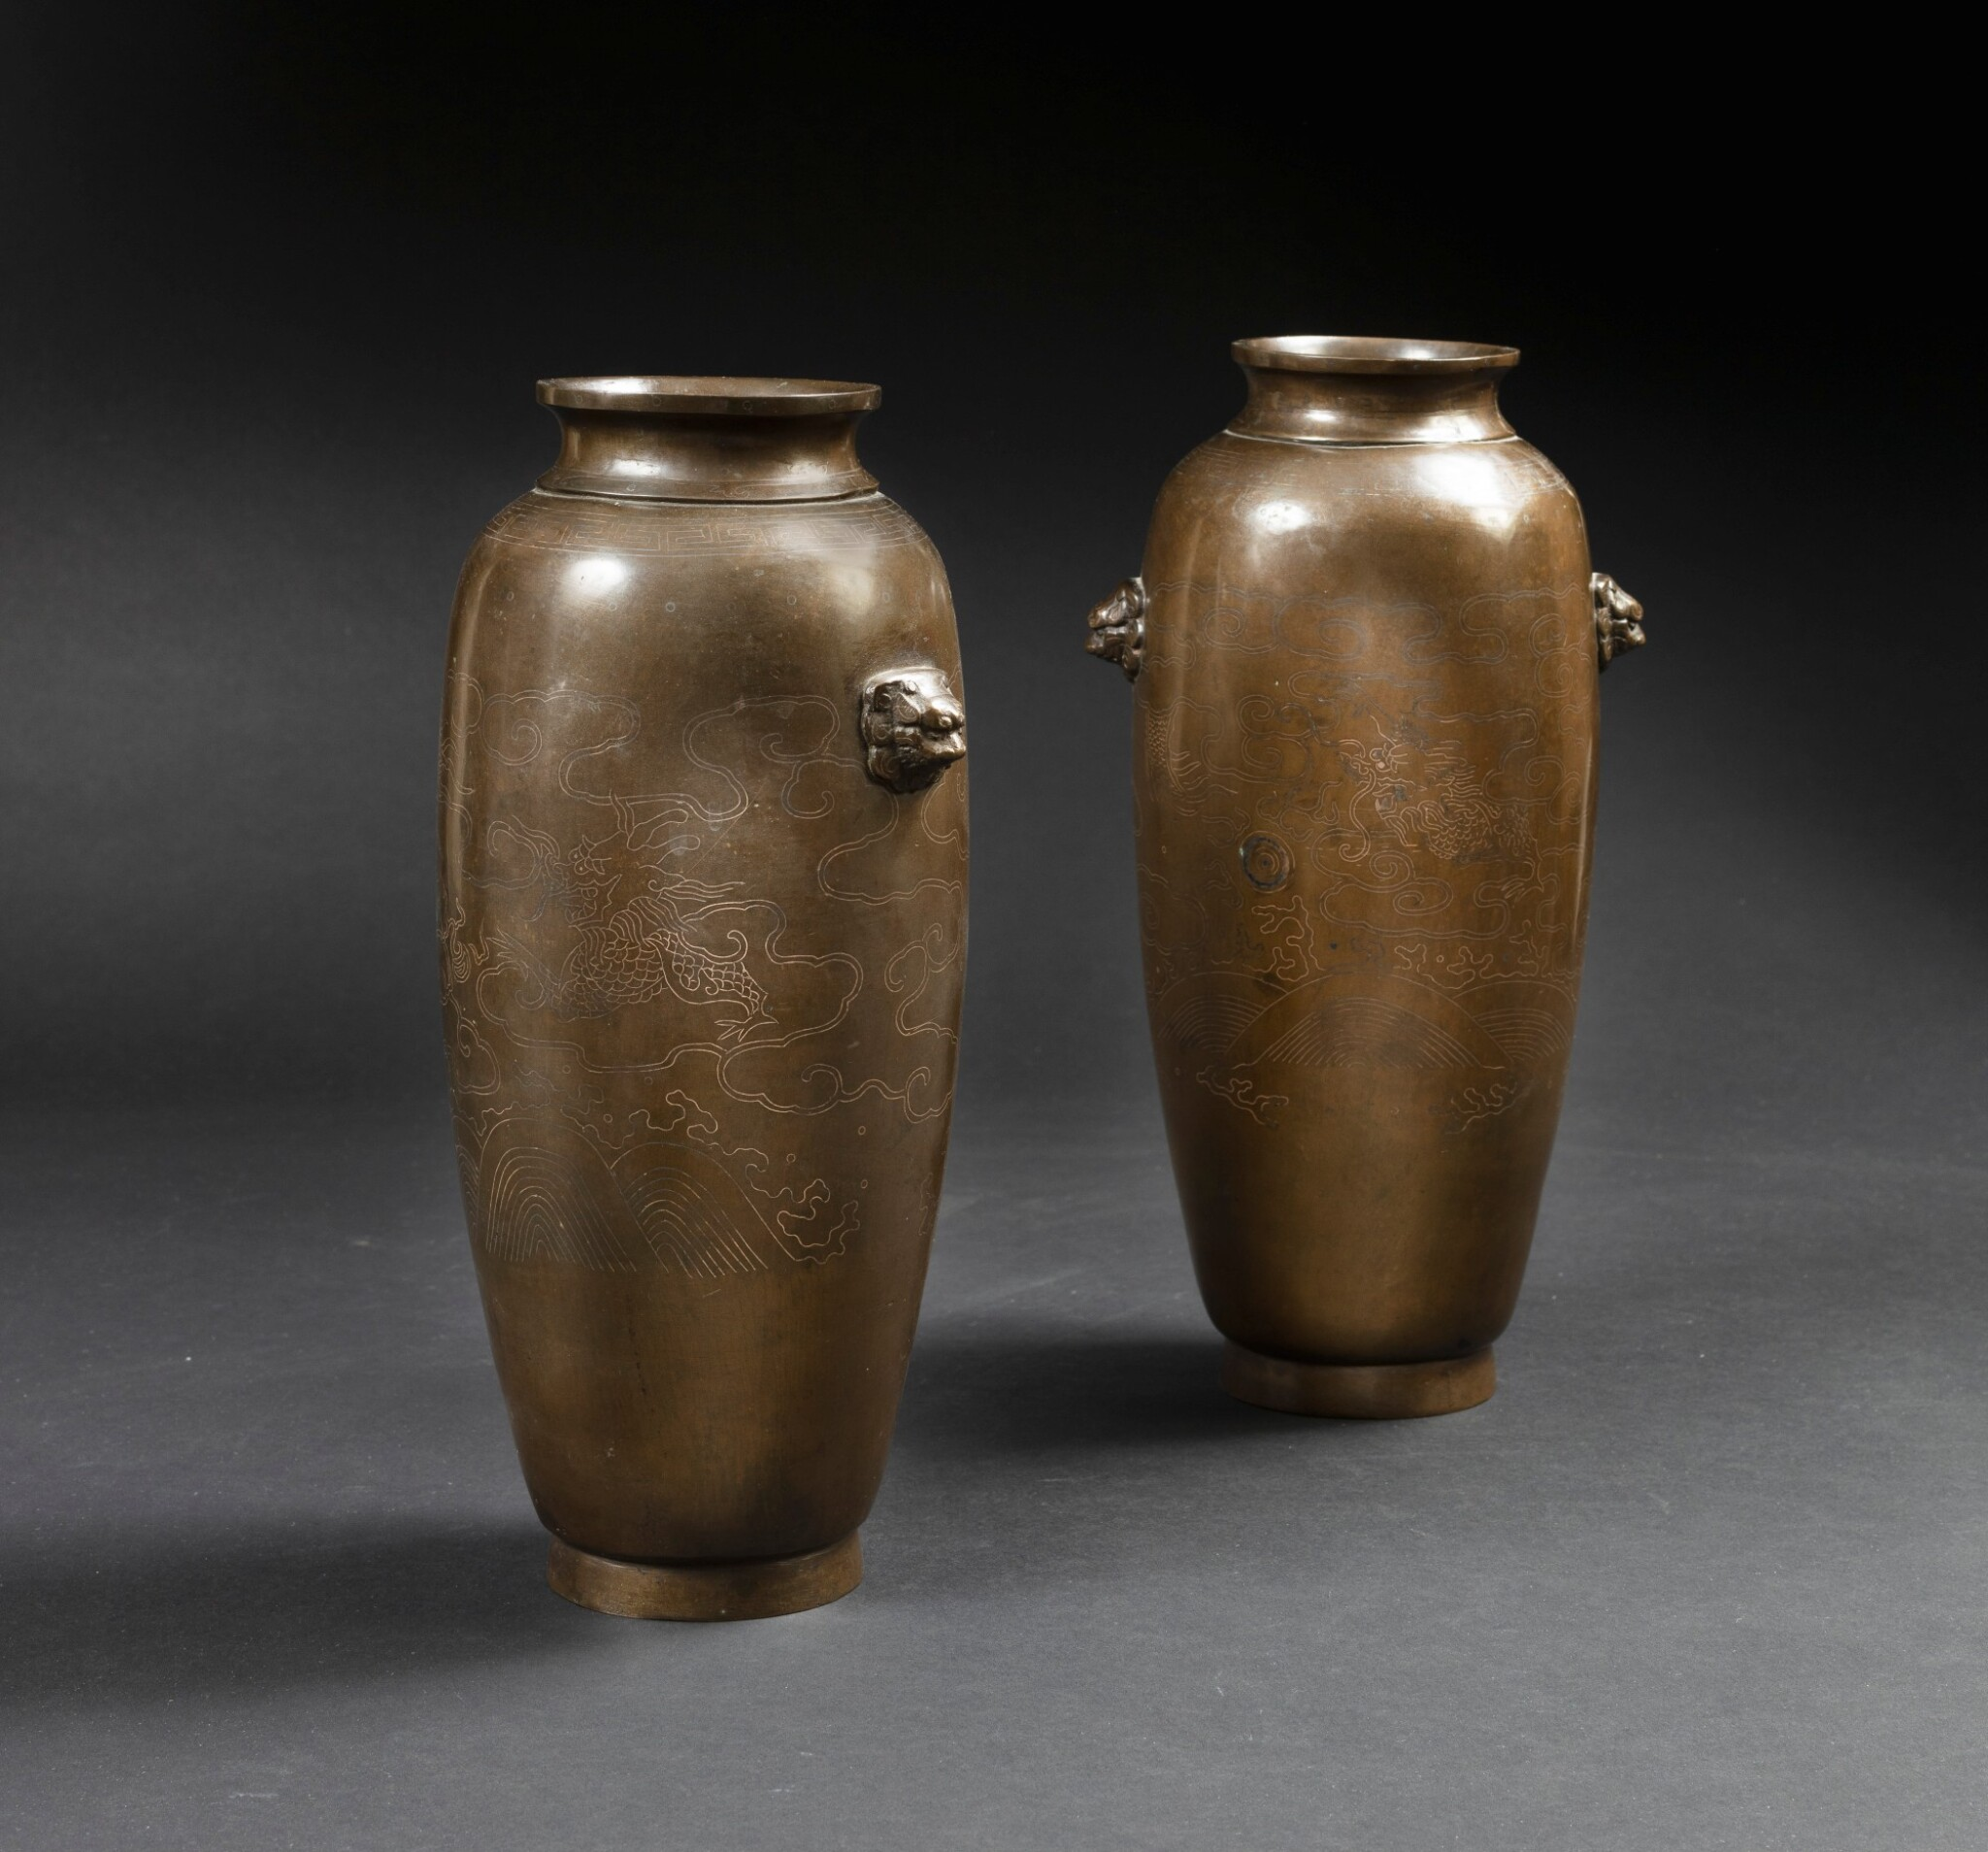 View full screen - View 1 of Lot 122. A extremely rare pair of bronze 'Shisou' ovoid 'dragon' vases Qing dynasty, 17th-18th century | 清十七至十八世紀 銅錯銀龍紋獅首耳瓶一對  《石叟》款.